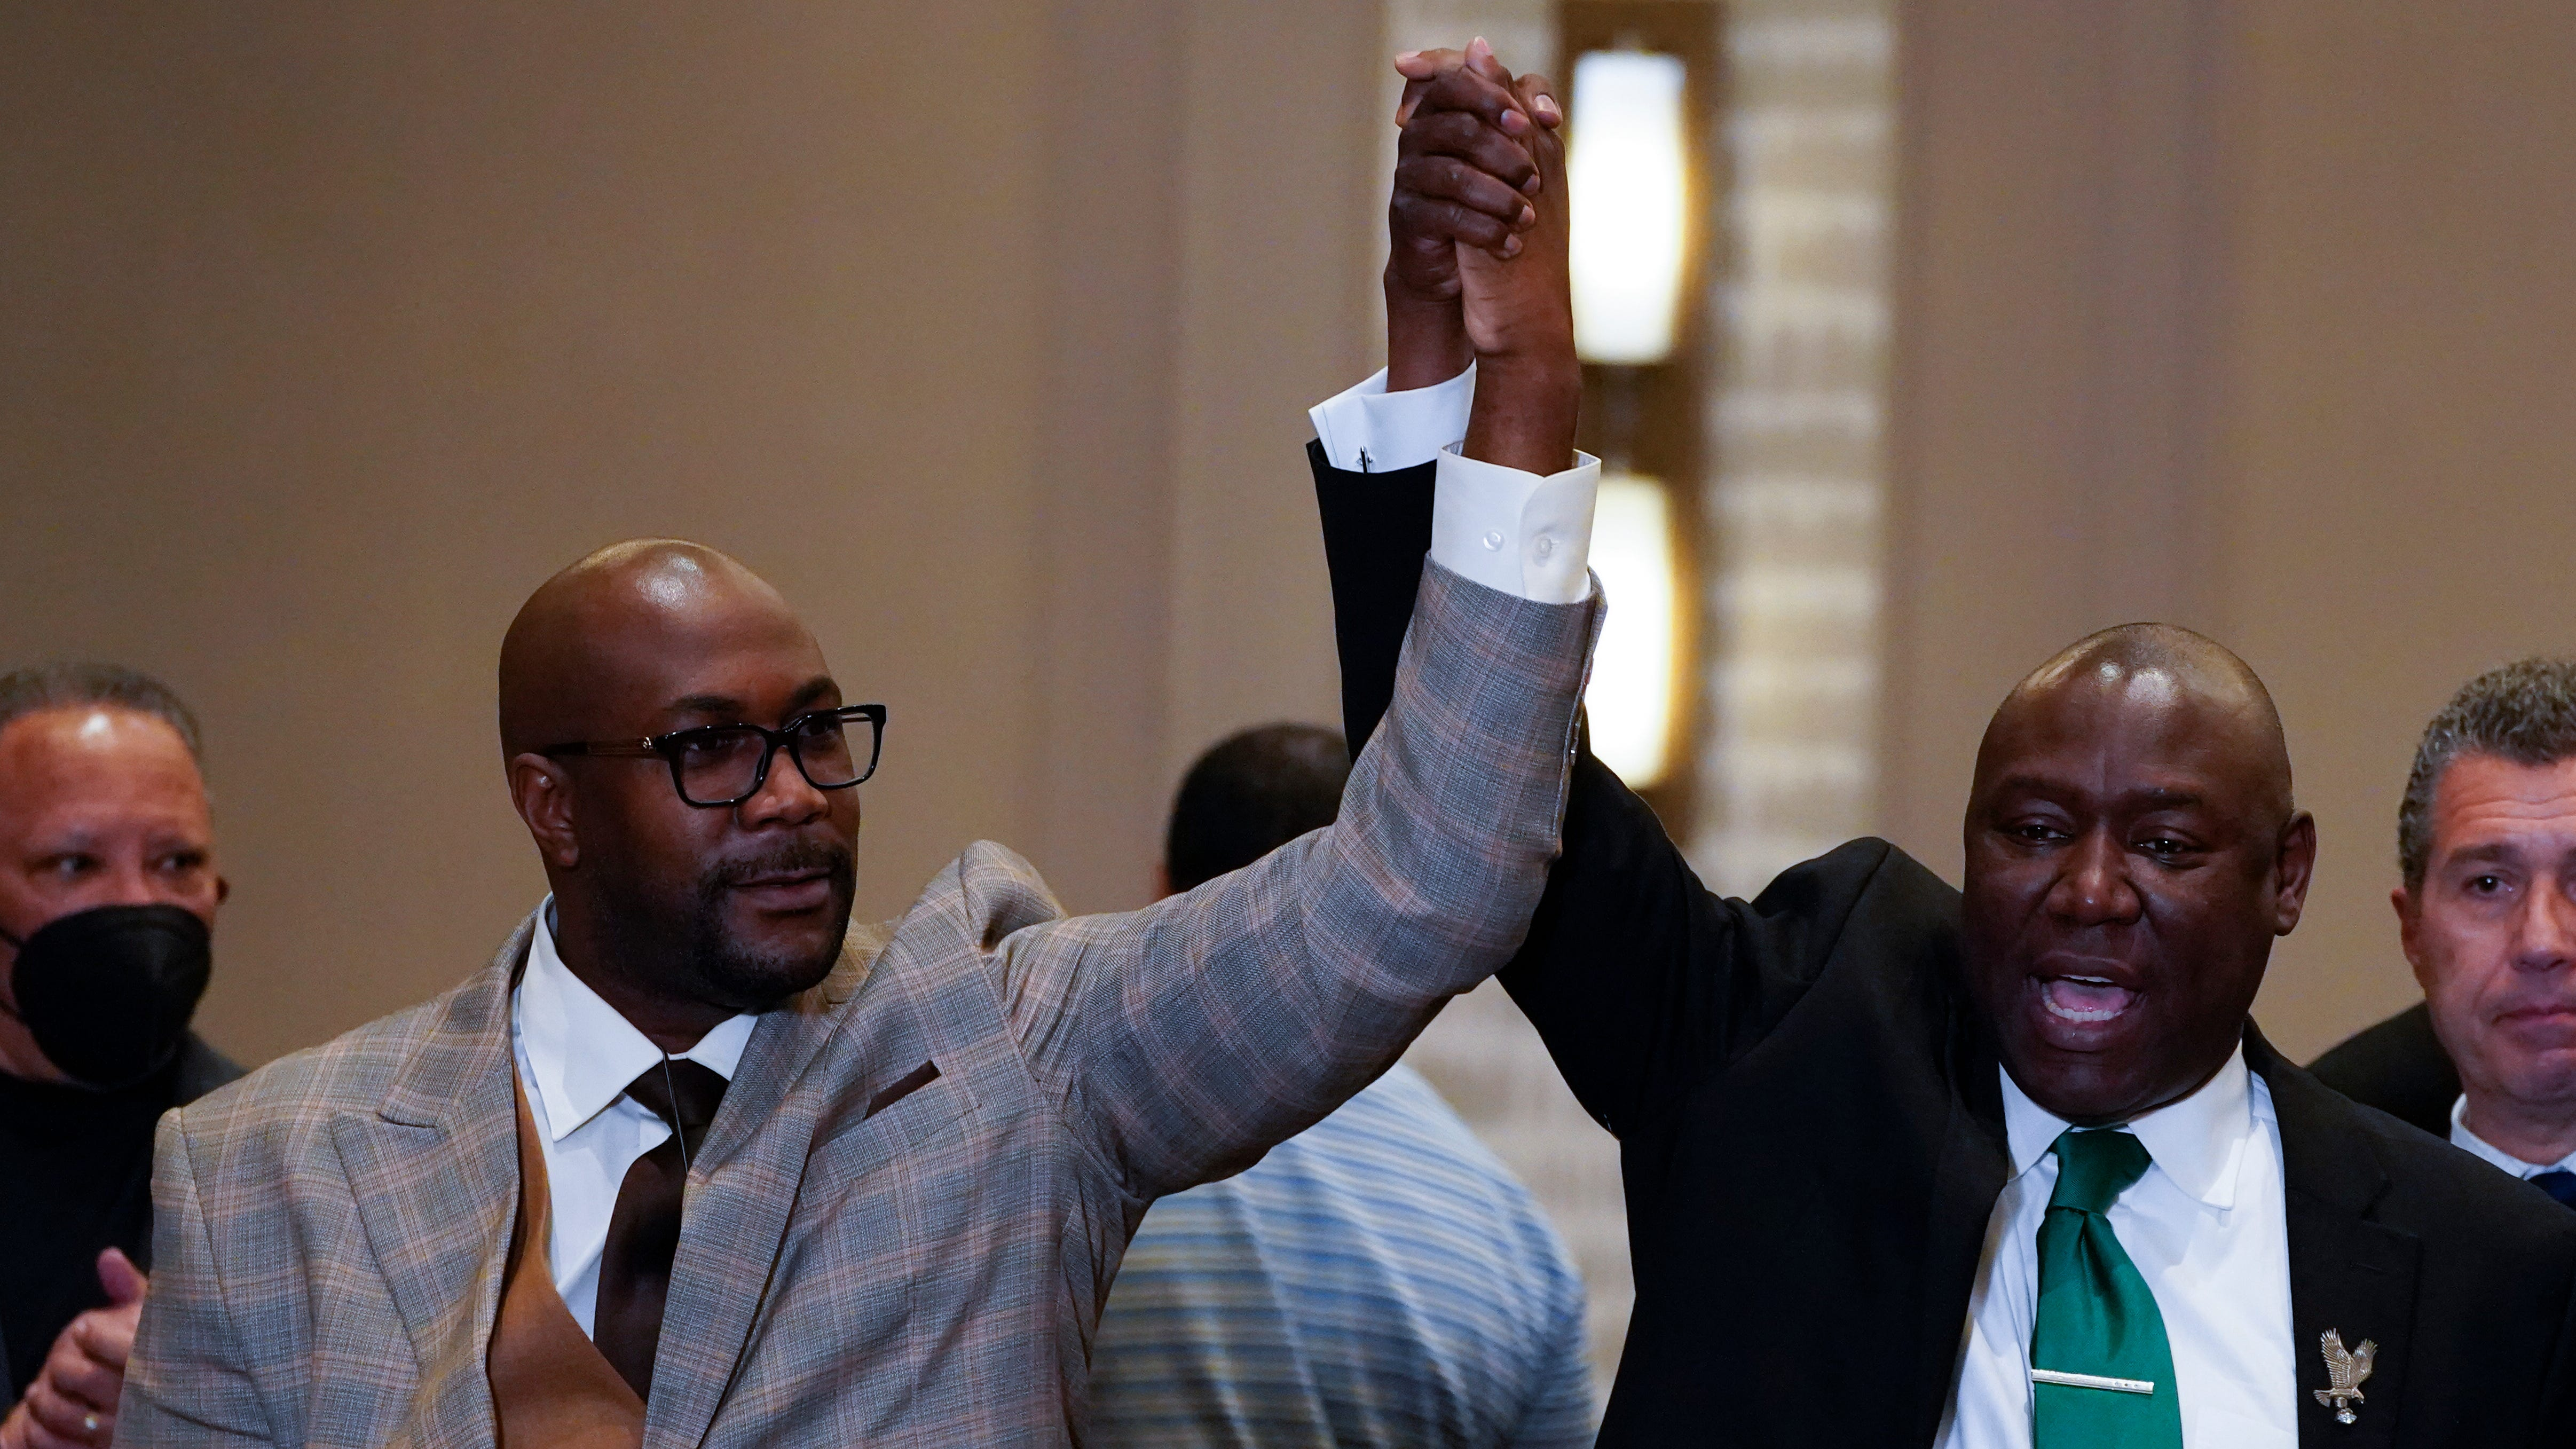 Q&A with attorney Ben Crump on Chauvin conviction